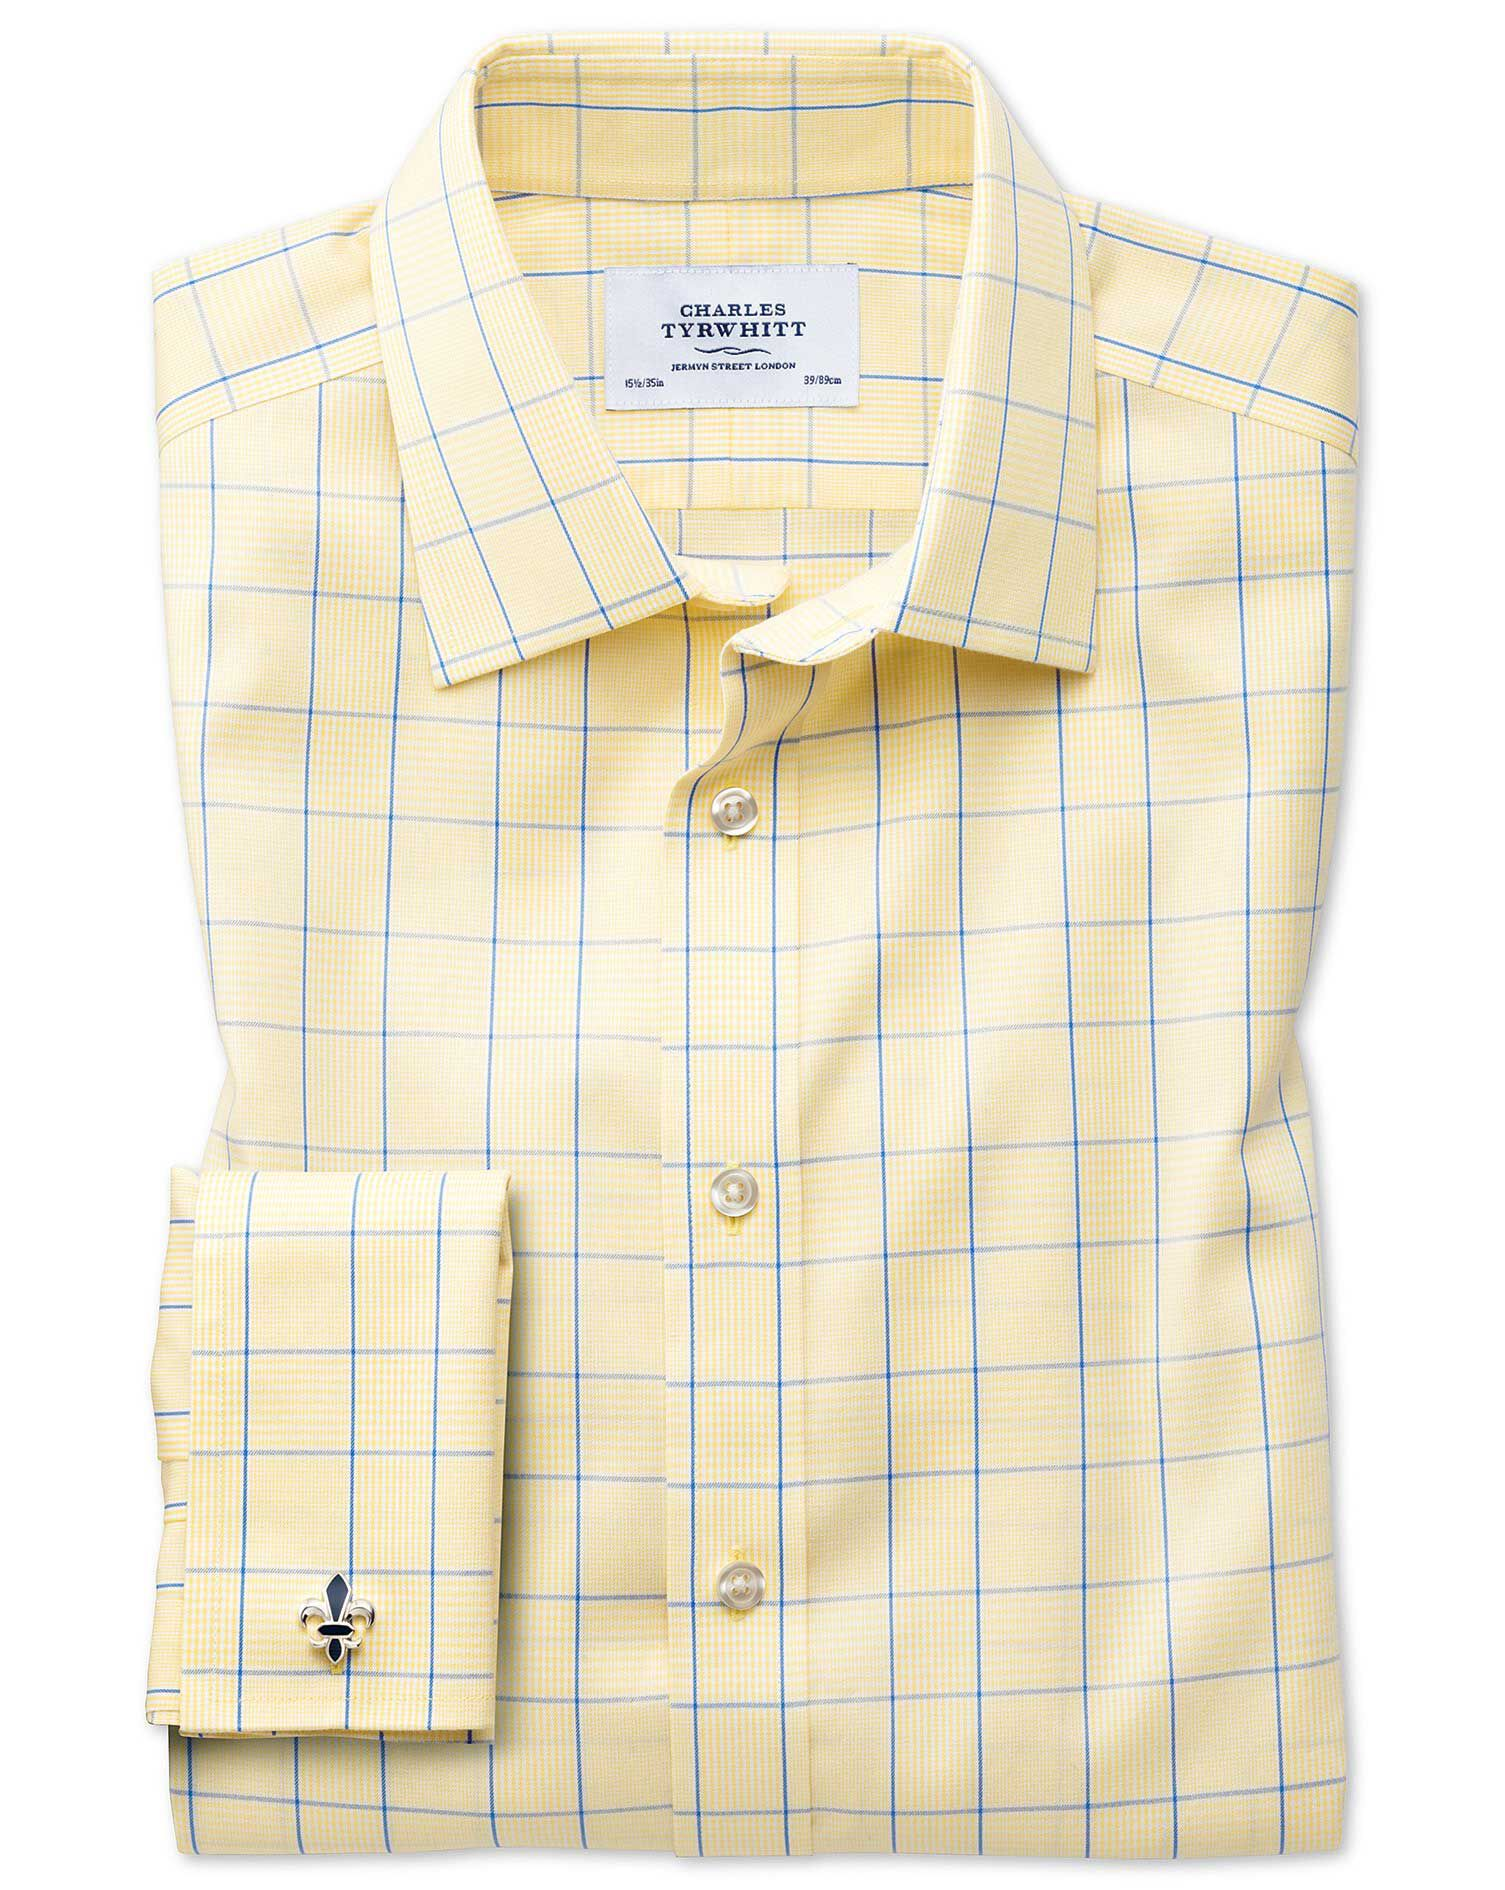 Slim Fit Non-Iron Prince Of Wales Yellow and Royal Blue Cotton Formal Shirt Double Cuff Size 15.5/36